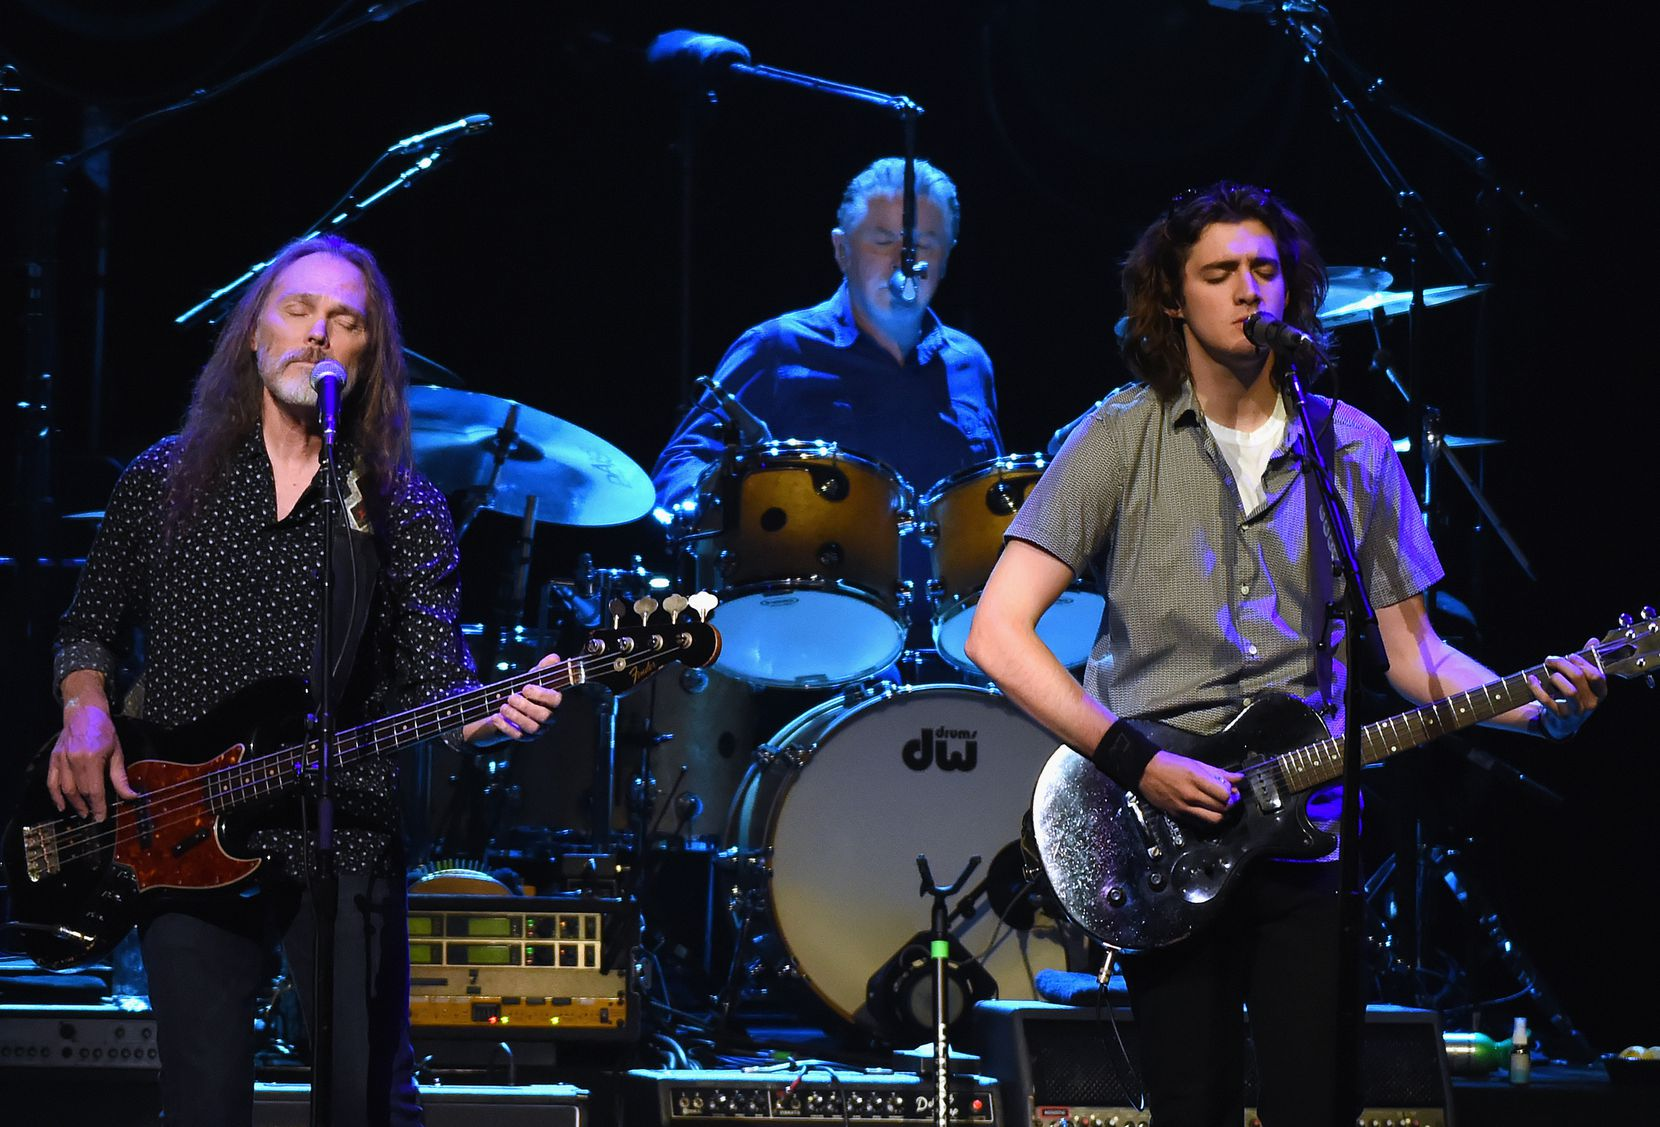 Timothy B. Schmit, Don Henley, Deacon Frey and Joe Walsh perform during the Eagles in Concert at The Grand Ole Opry on Oct. 29, 2017 in Nashville, Tennessee.  NASHVILLE, TN - OCTOBER 29:  Eagles, Timothy B. Schmit, Don Henley and Deacon Frey and Joe Walsh perform during the Eagles in Concert at The Grand Ole Opry on October 29, 2017 in Nashville, Tennessee.  (Photo by Rick Diamond/Getty Images) ORG XMIT: 775066863